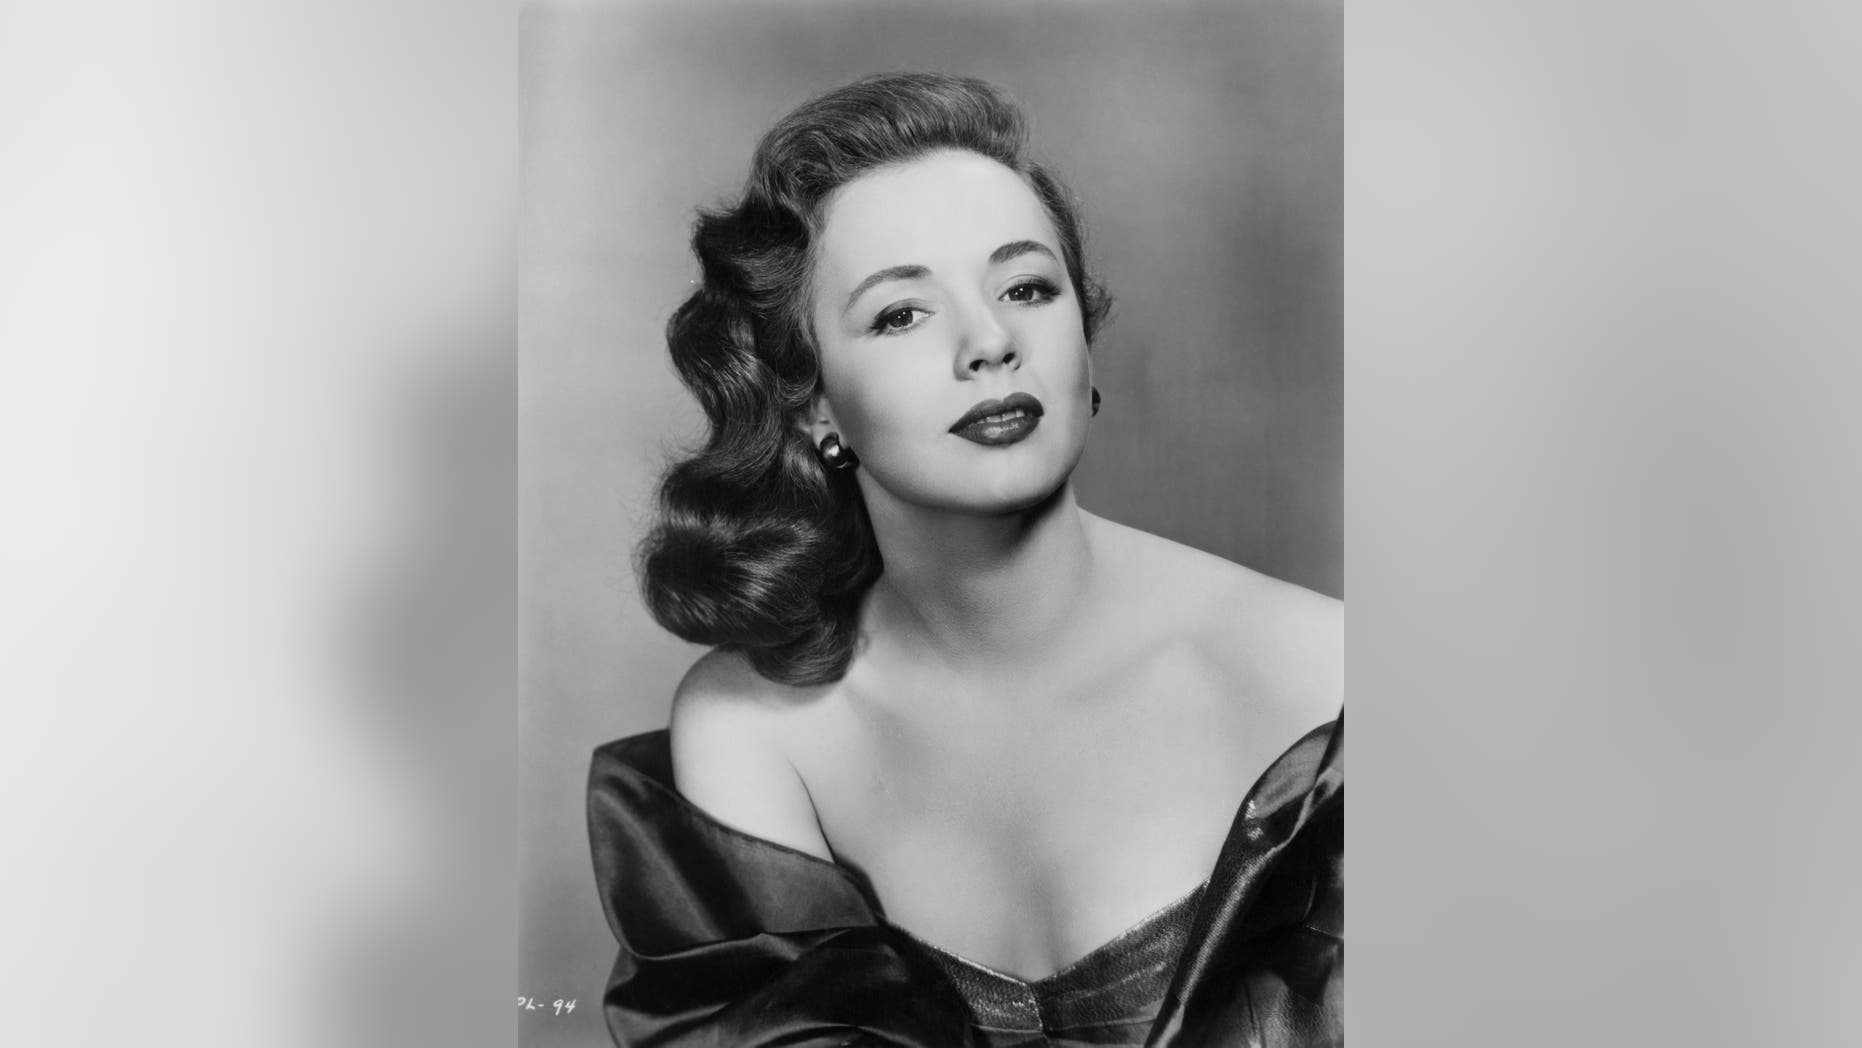 American actress Piper Laurie in a promotional portrait, circa 1954.